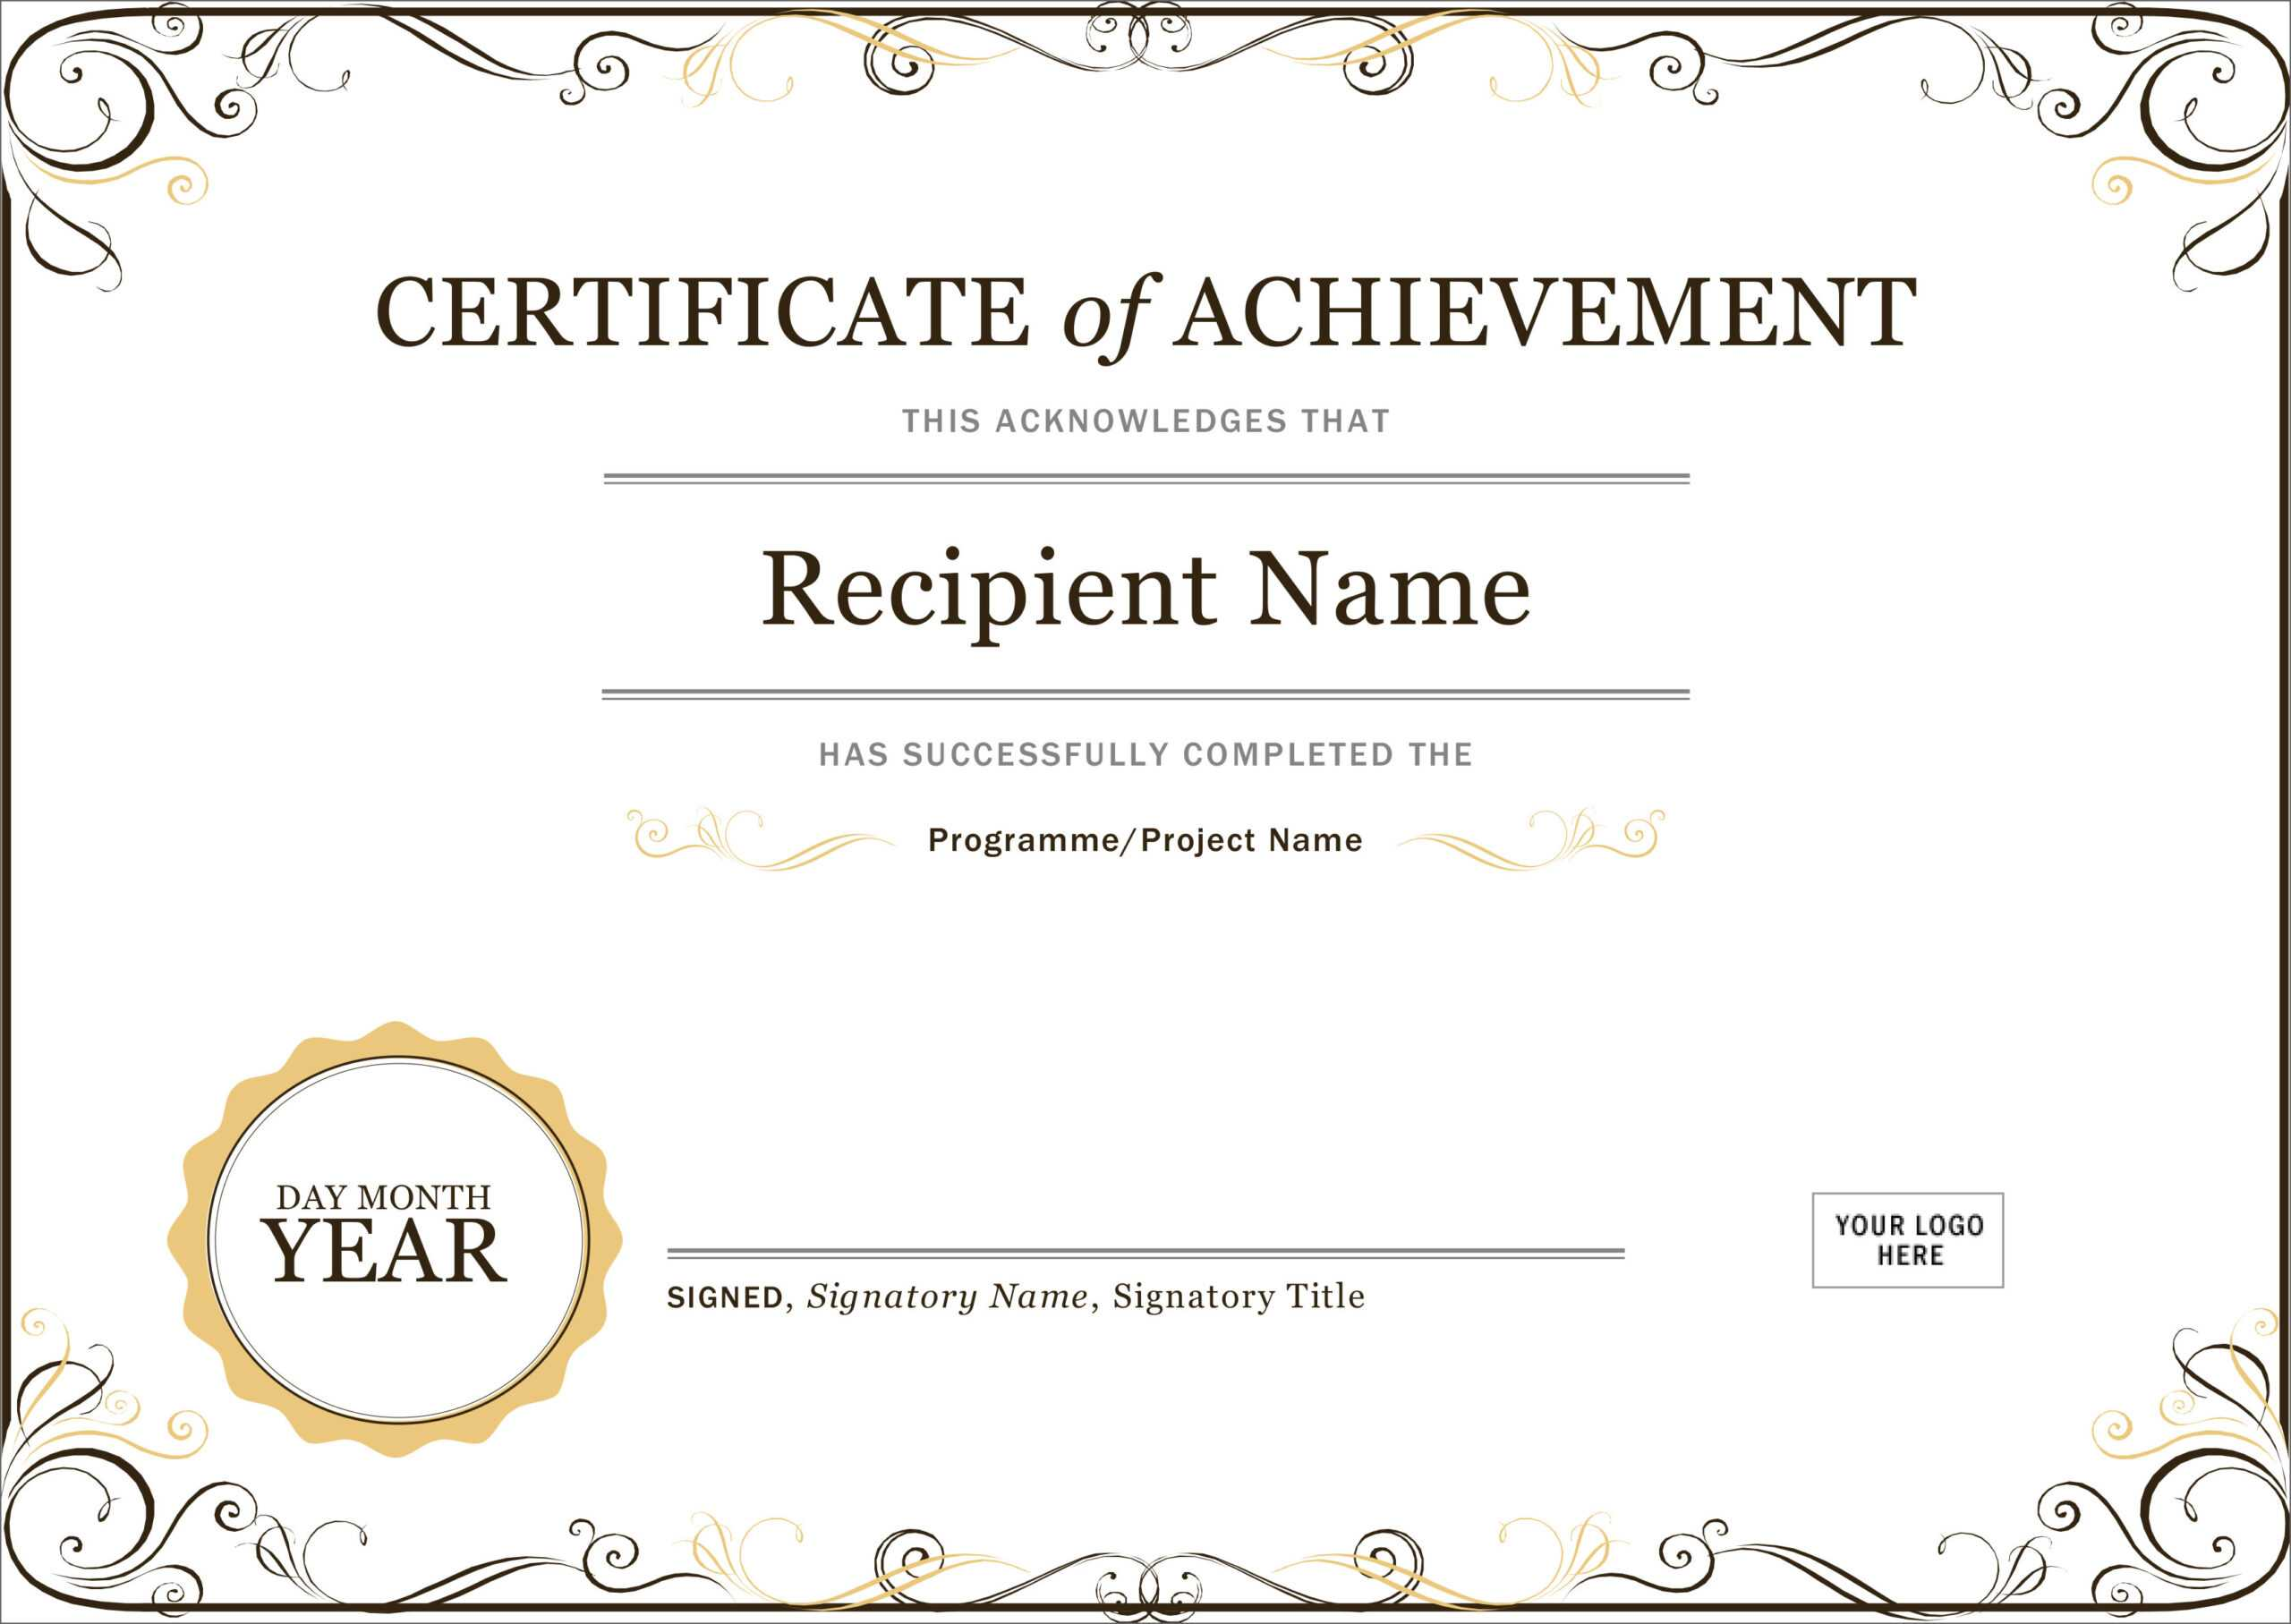 50 Free Creative Blank Certificate Templates In Psd For Template For Certificate Of Appreciation In Microsoft Word